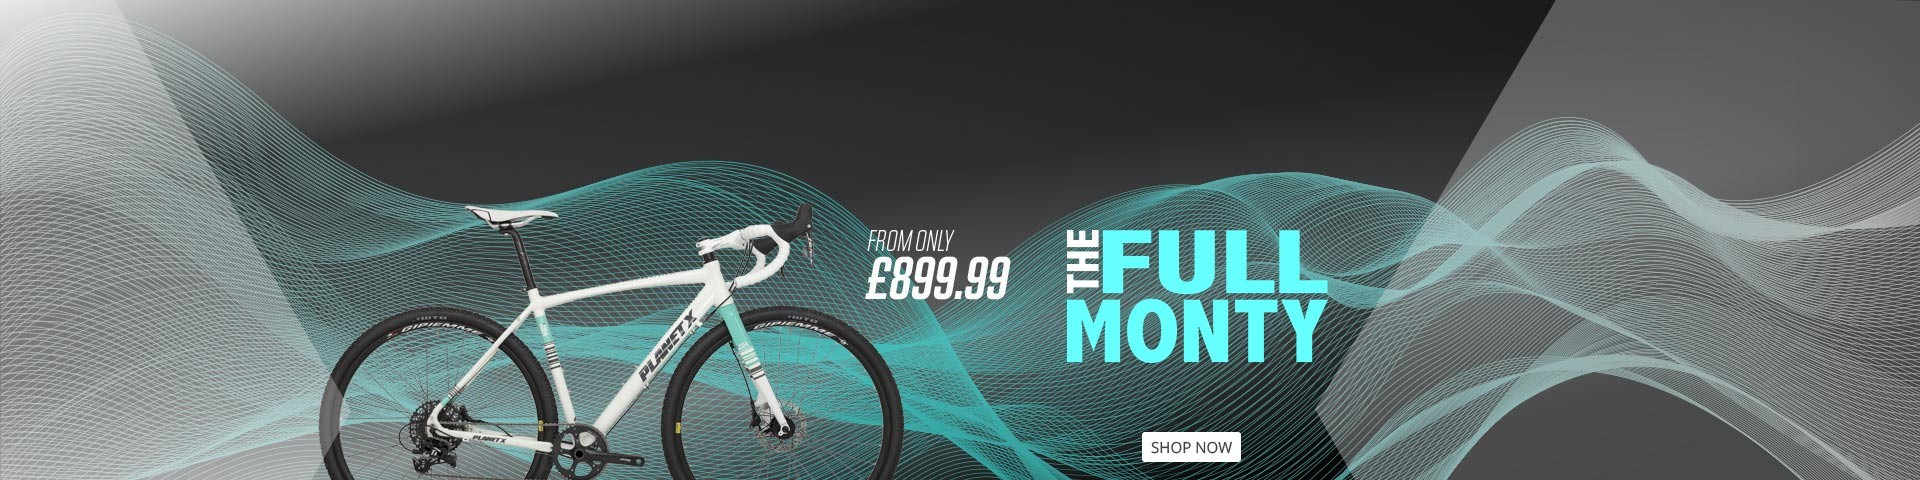 FULL MONTY ALUMINIUM GRAVEL ADVENTURE BIKE